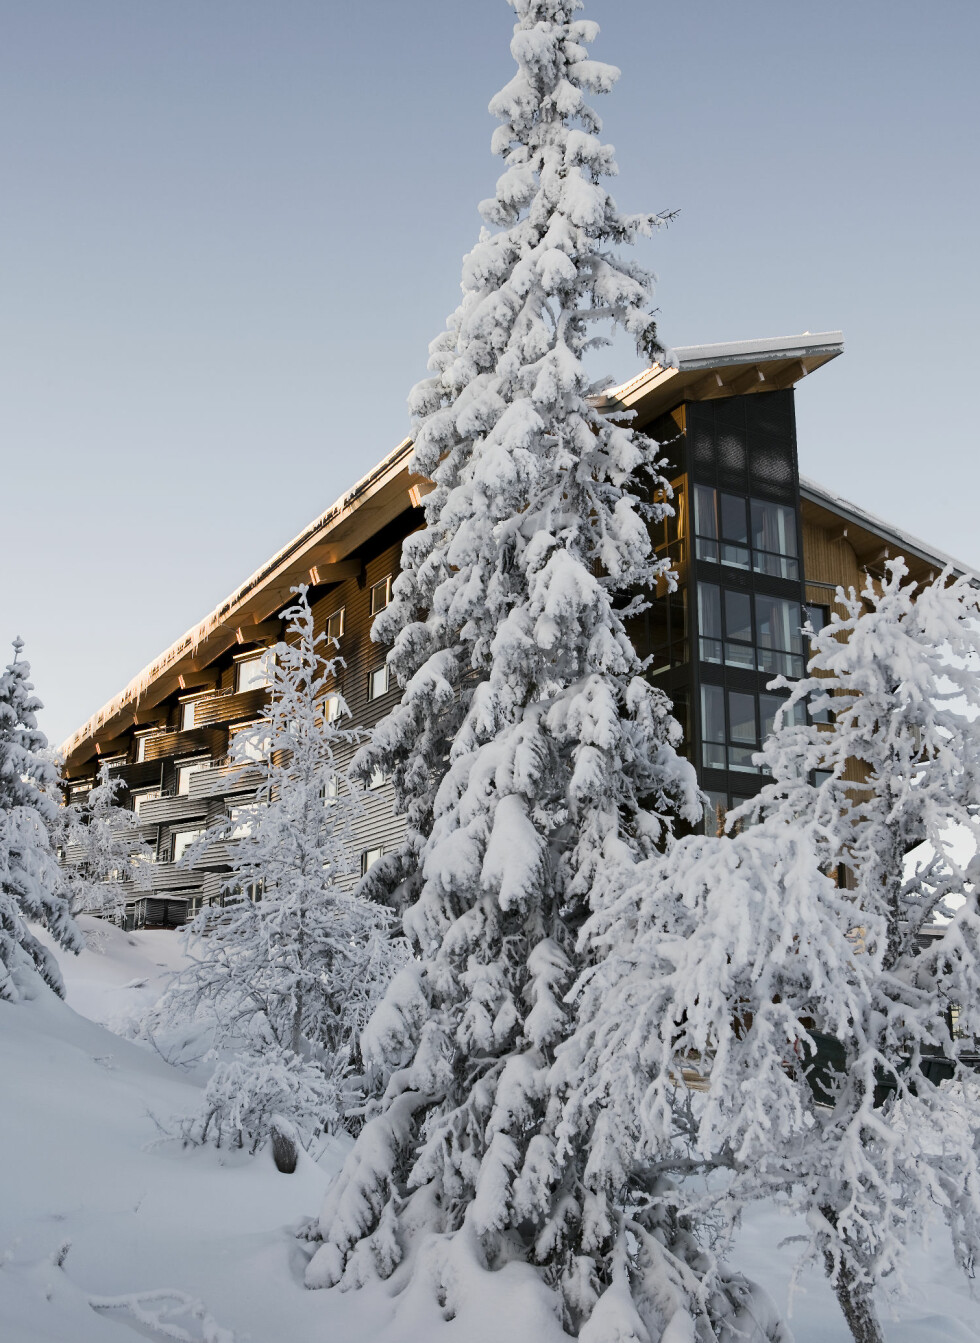 Copperhill Mountain Lodge ligger i Åre. Foto: Copperhill Mountain Lodge